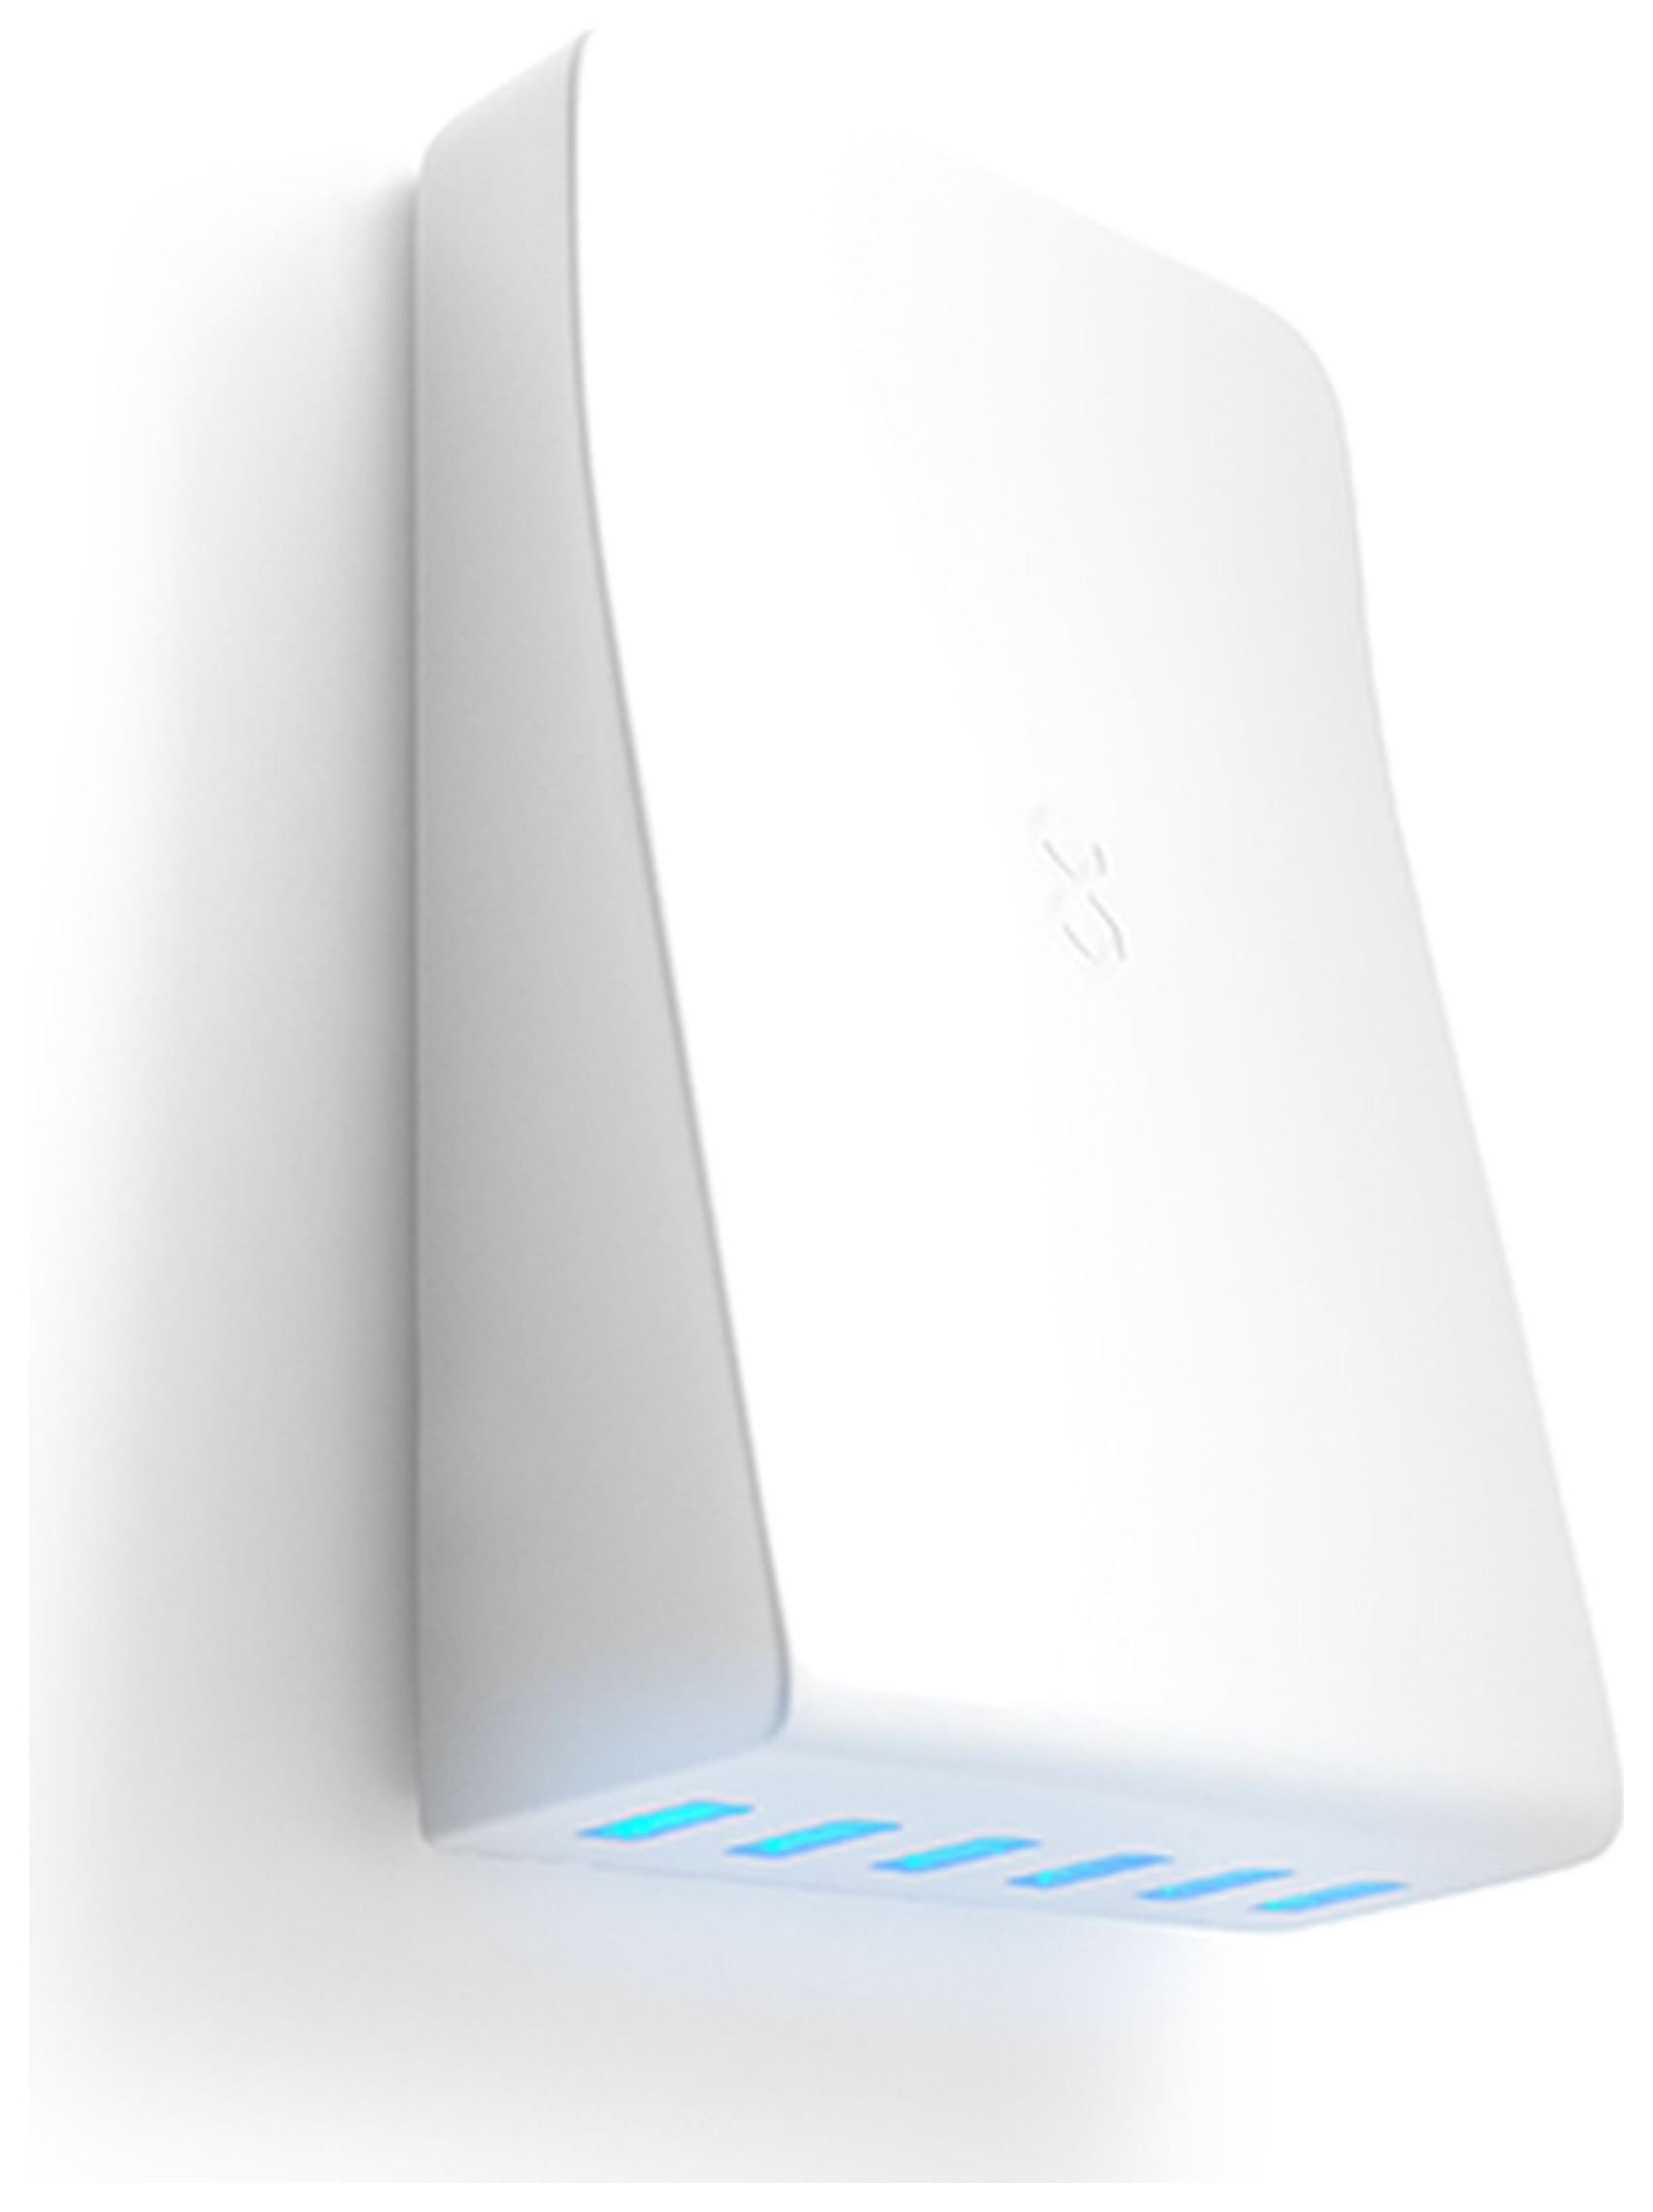 Image of BlueFlame 6 Device Wall Charger.